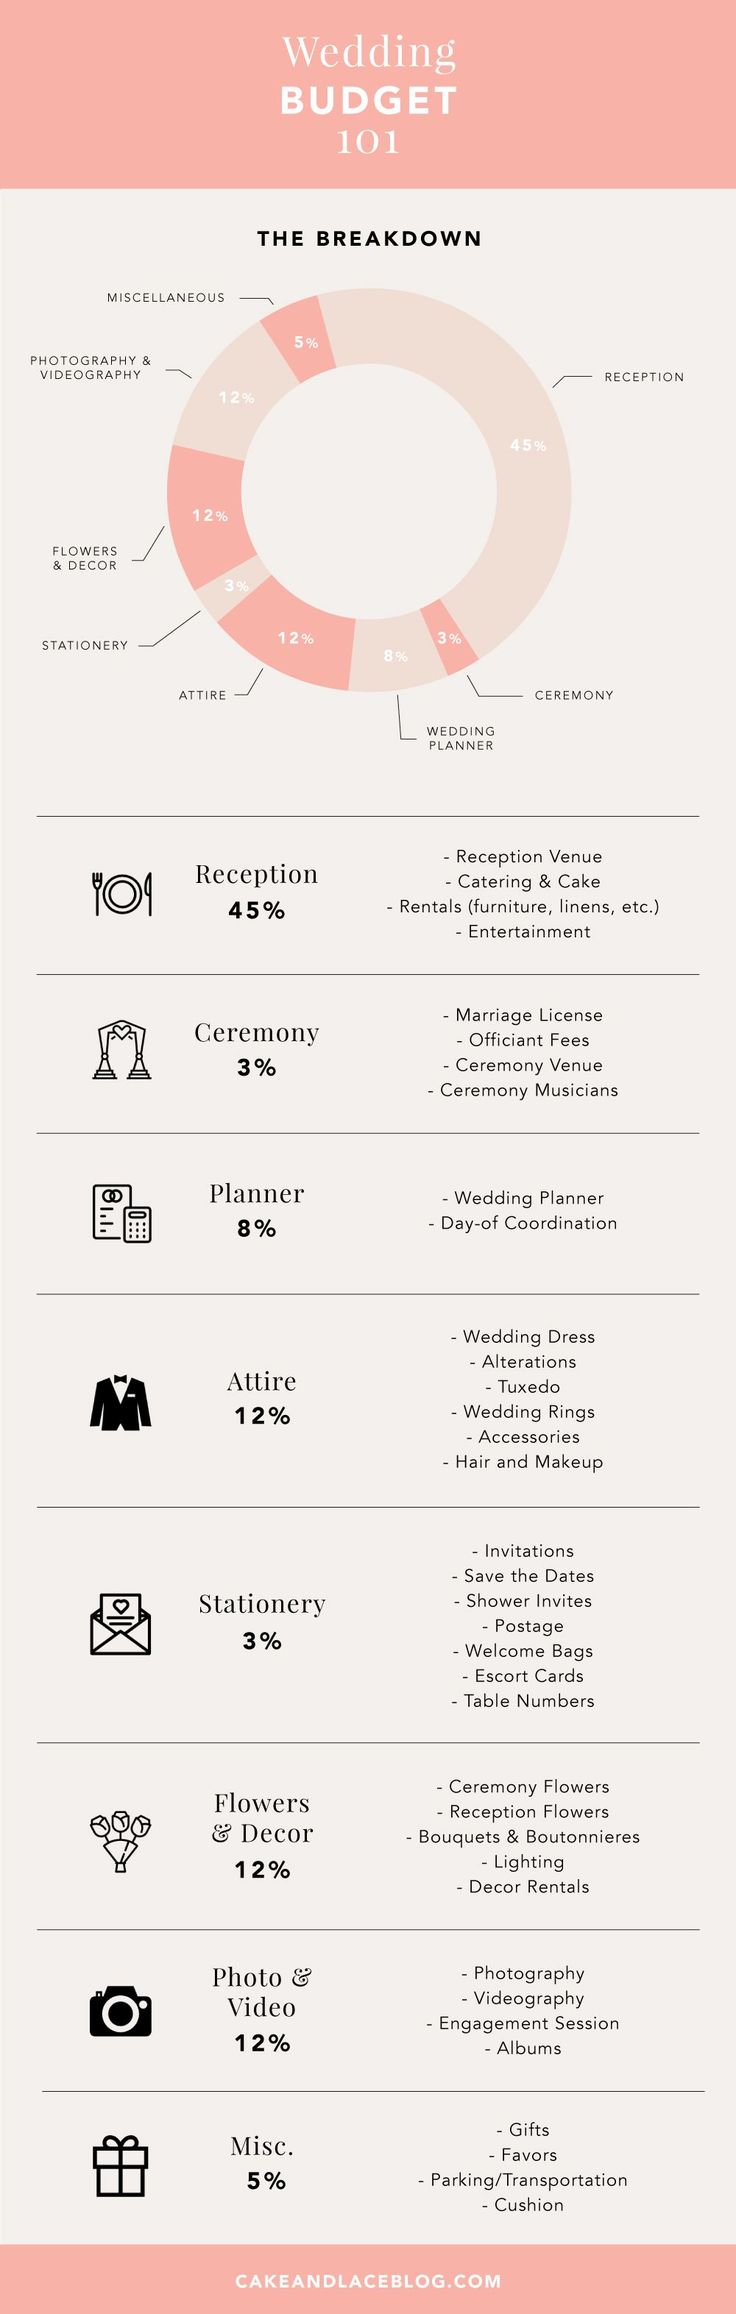 12 must have wedding planning checklists for every bride